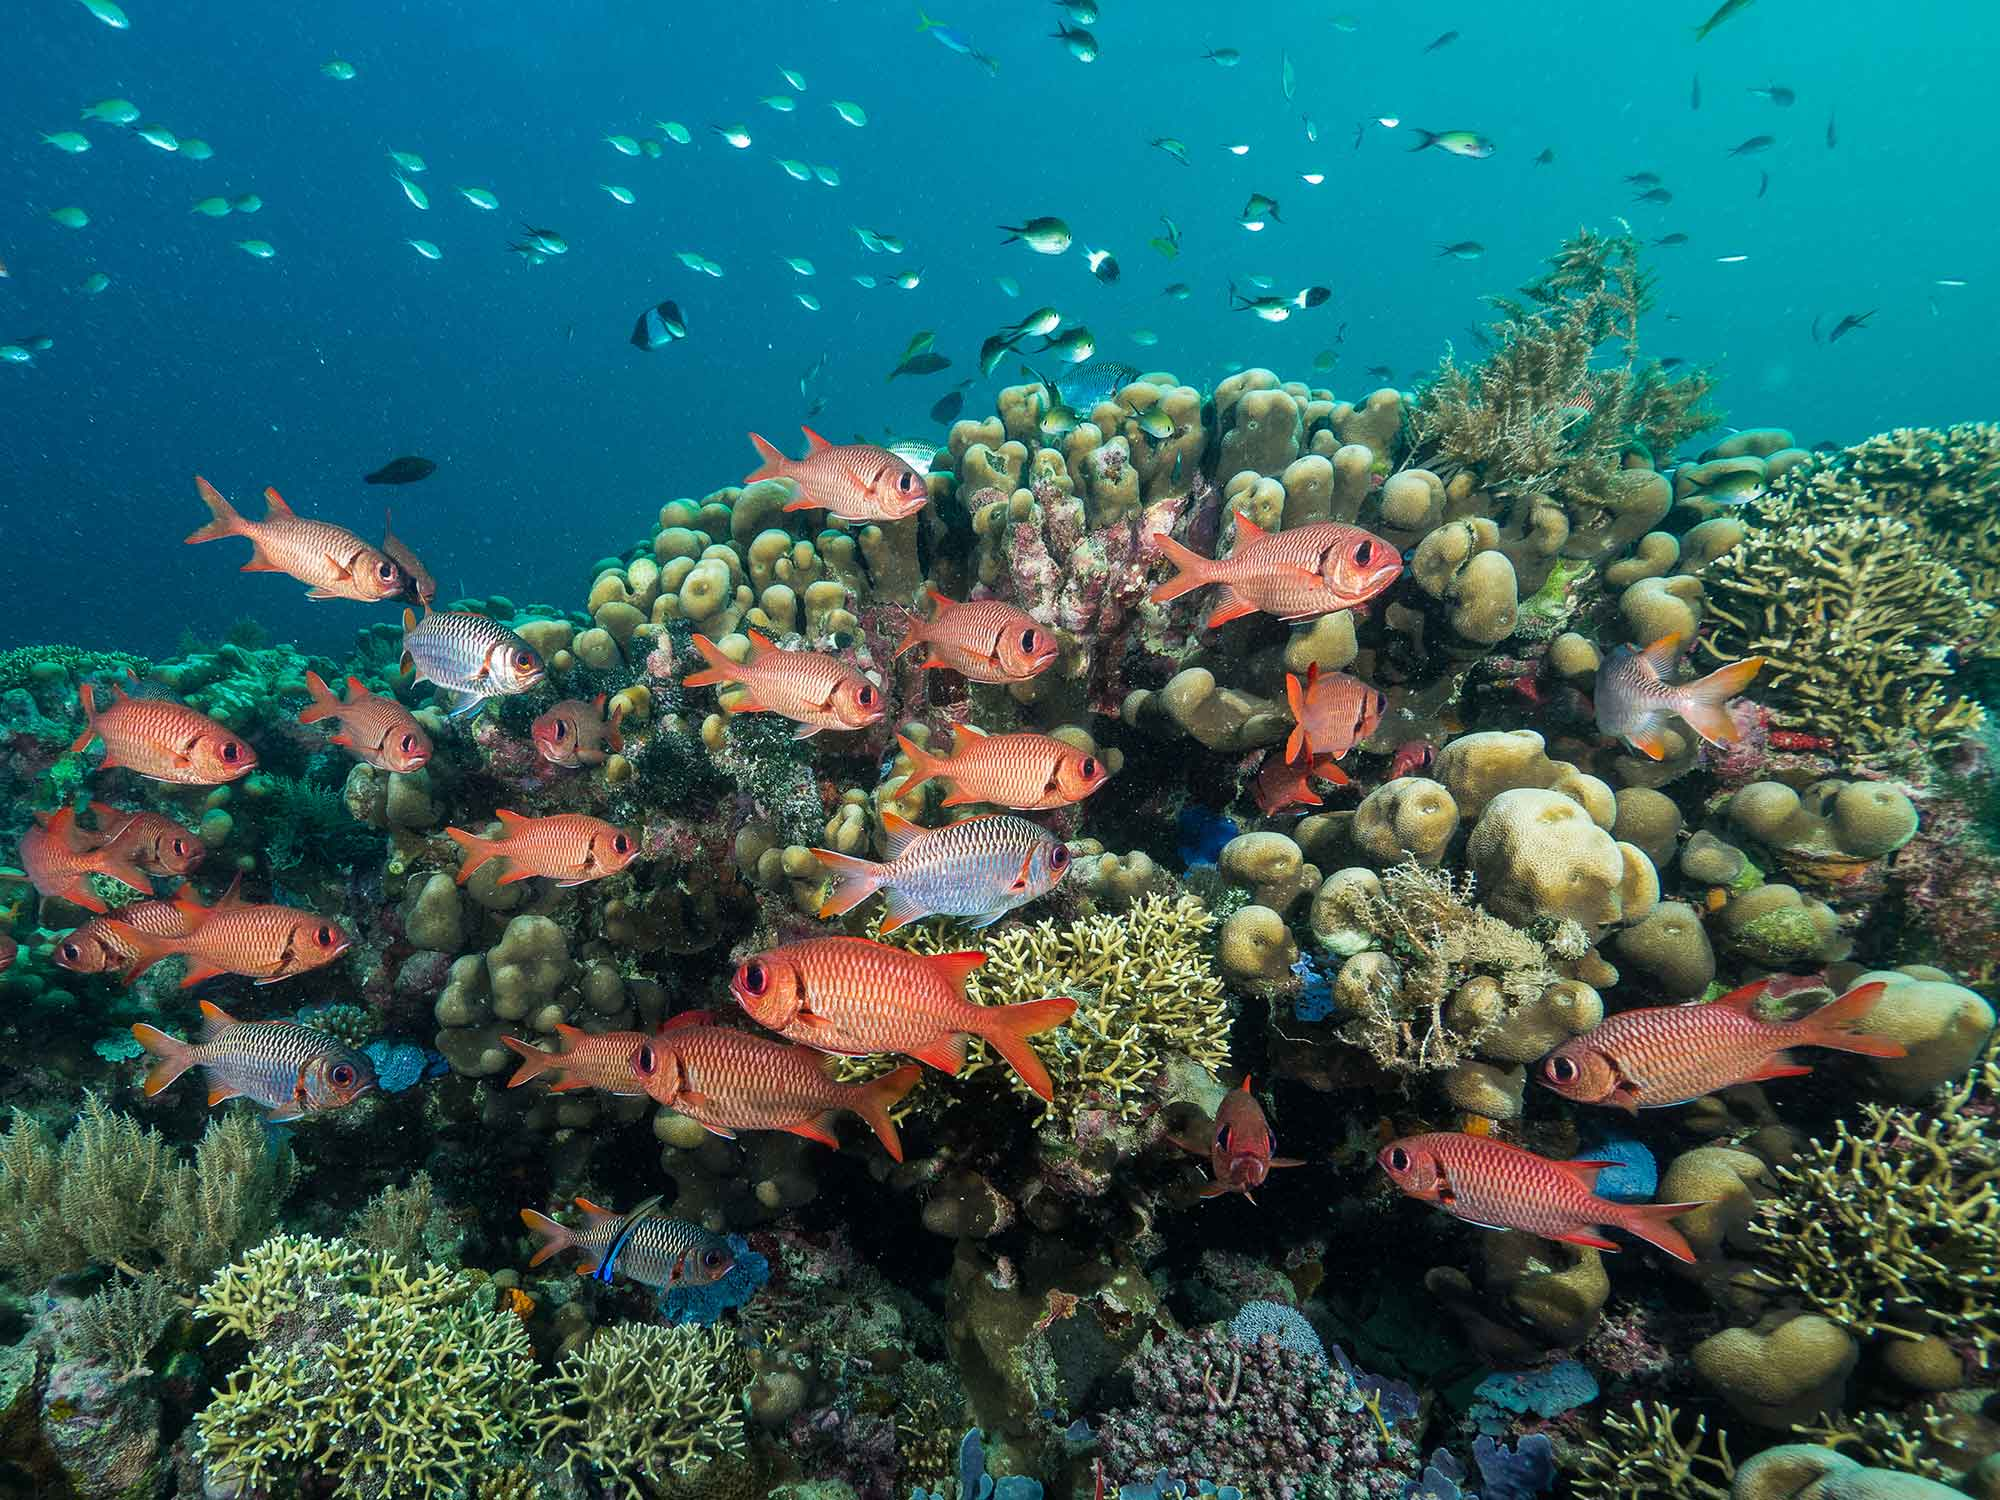 Image of Coral and Fish